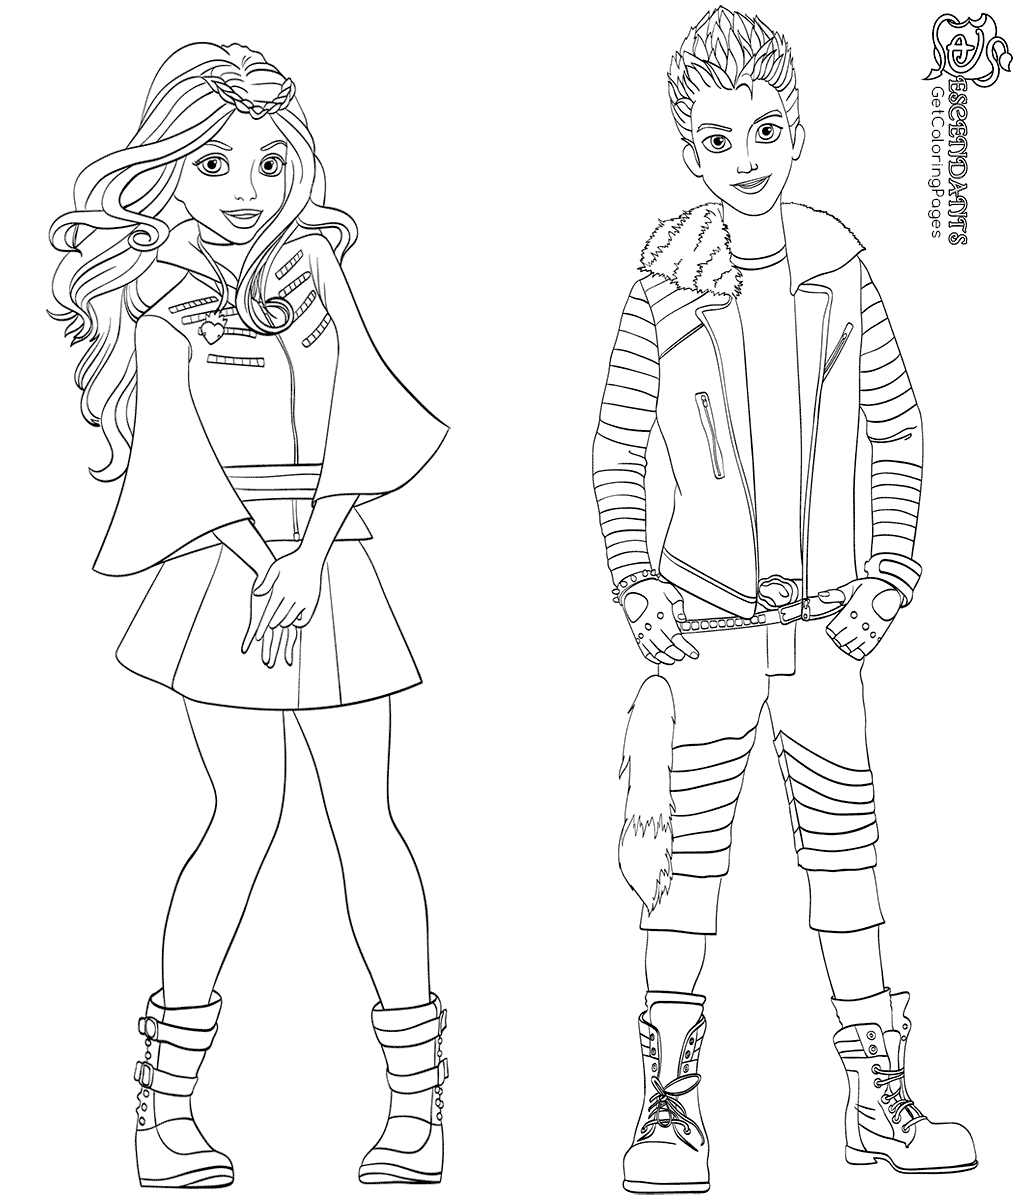 1024x1200 Carlos And Evie Coloring Page From Descendants Characters